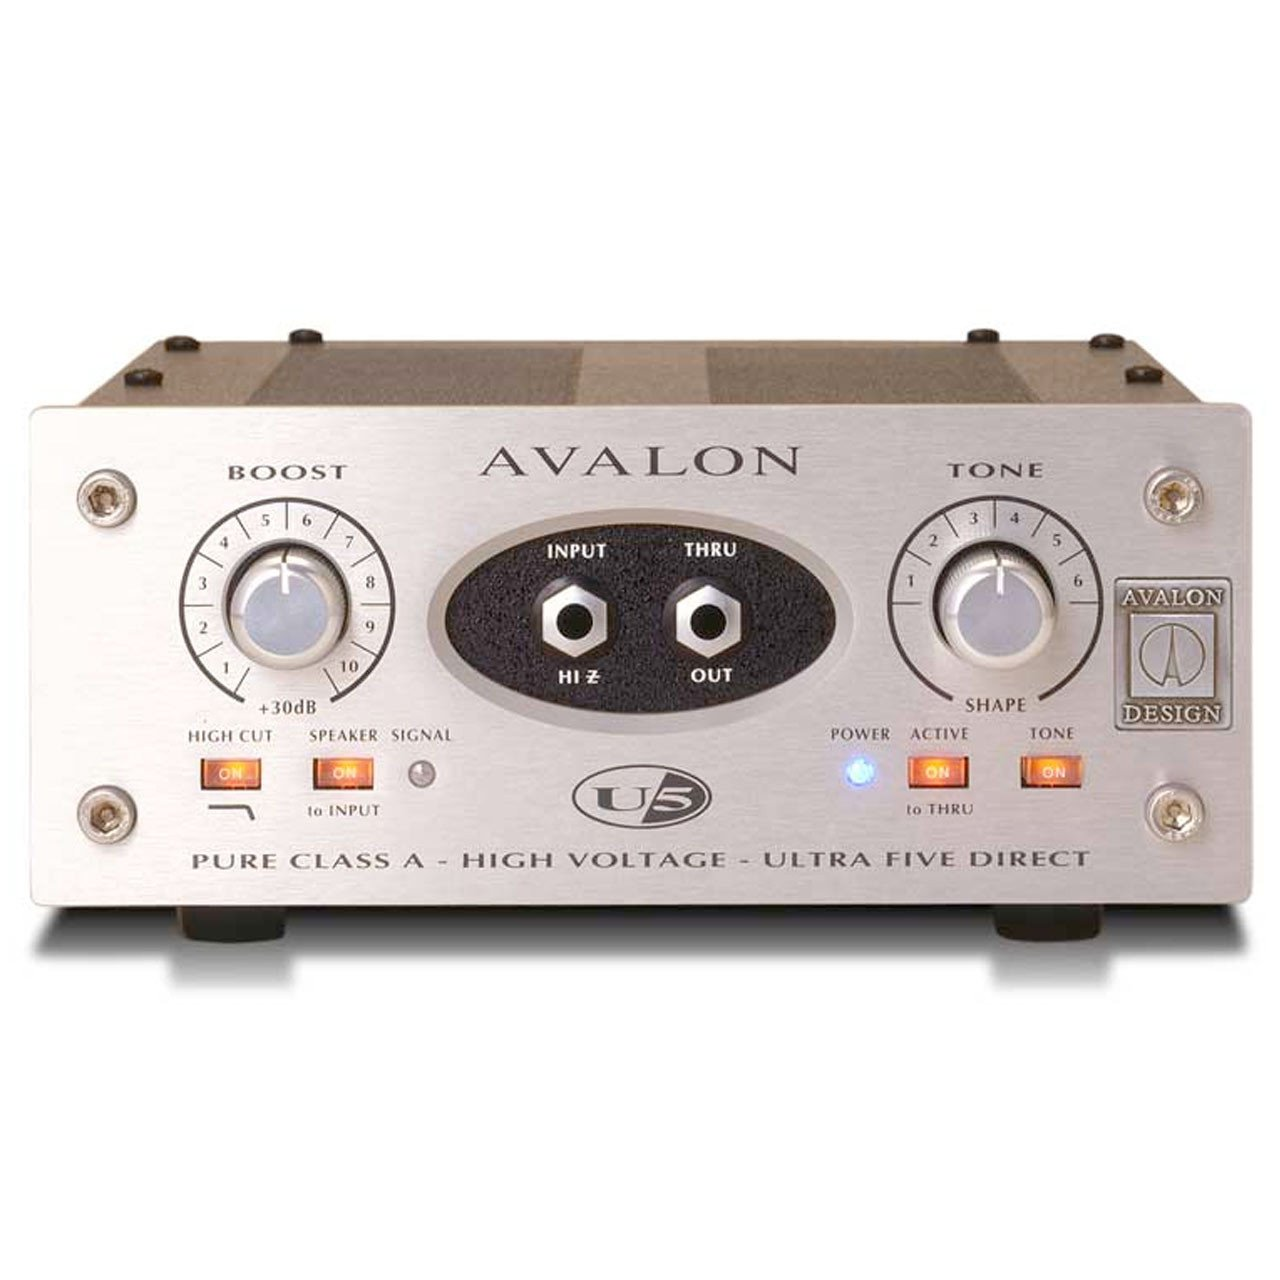 Preamps/Channel Strips - Avalon Design U5 Mono Instrument & DI Preamplifier